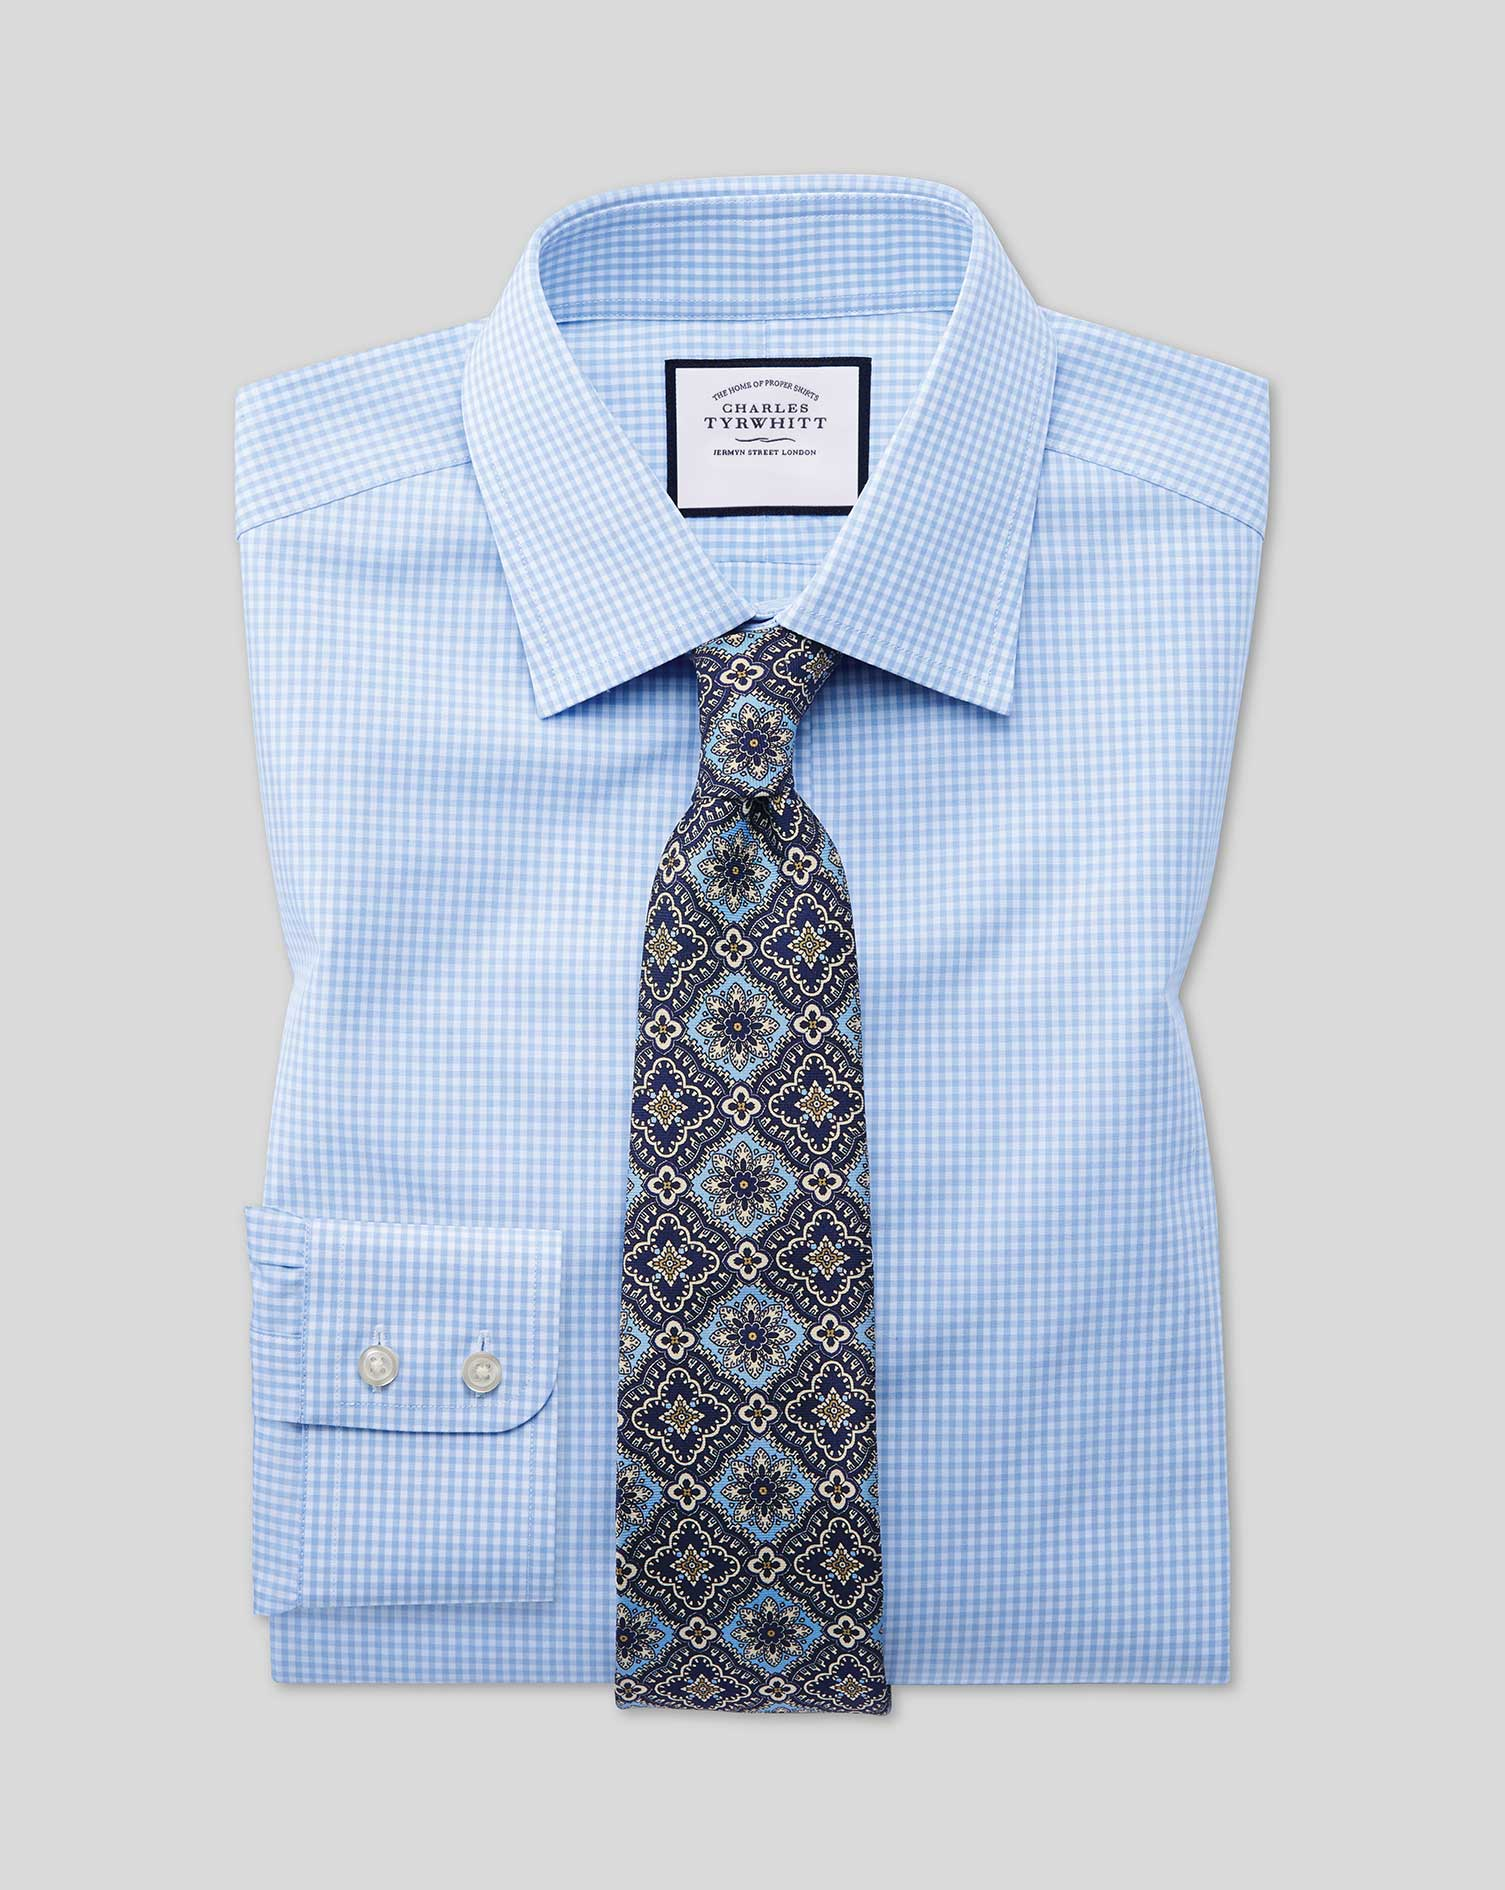 Classic Fit Sky Blue Small Gingham Cotton Formal Shirt Double Cuff Size 17/36 by Charles Tyrwhitt